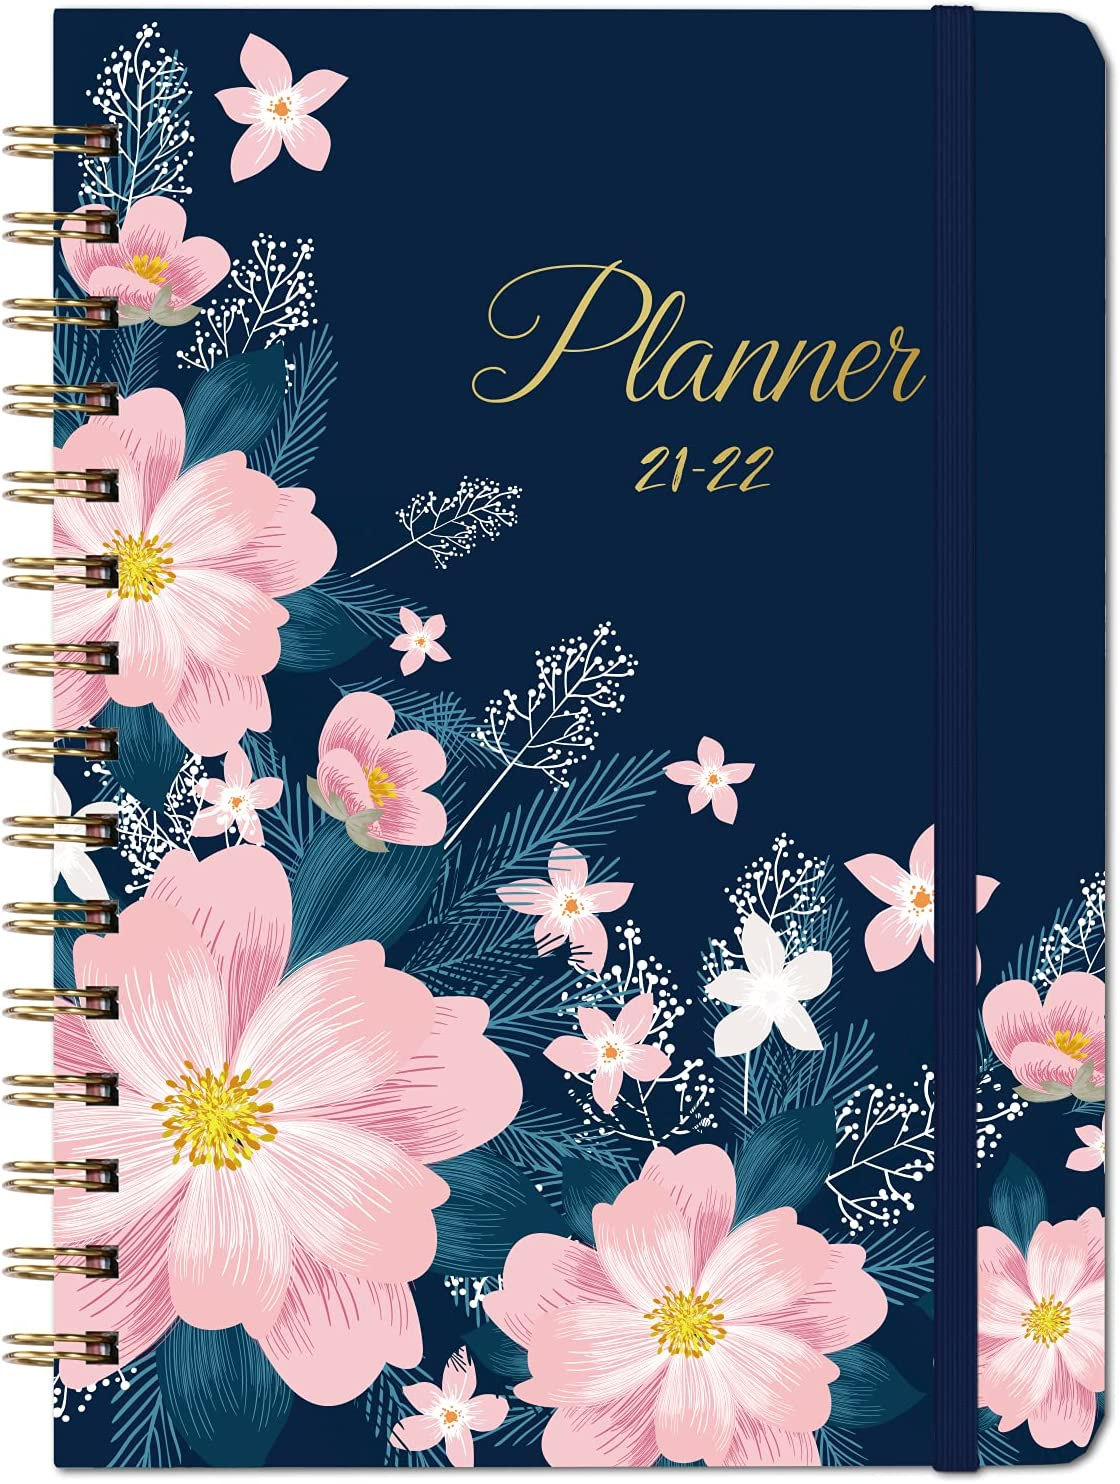 2021-2022 Planner - July 2021 Monthly Weekly Award-winning store At the price of surprise 2022 June